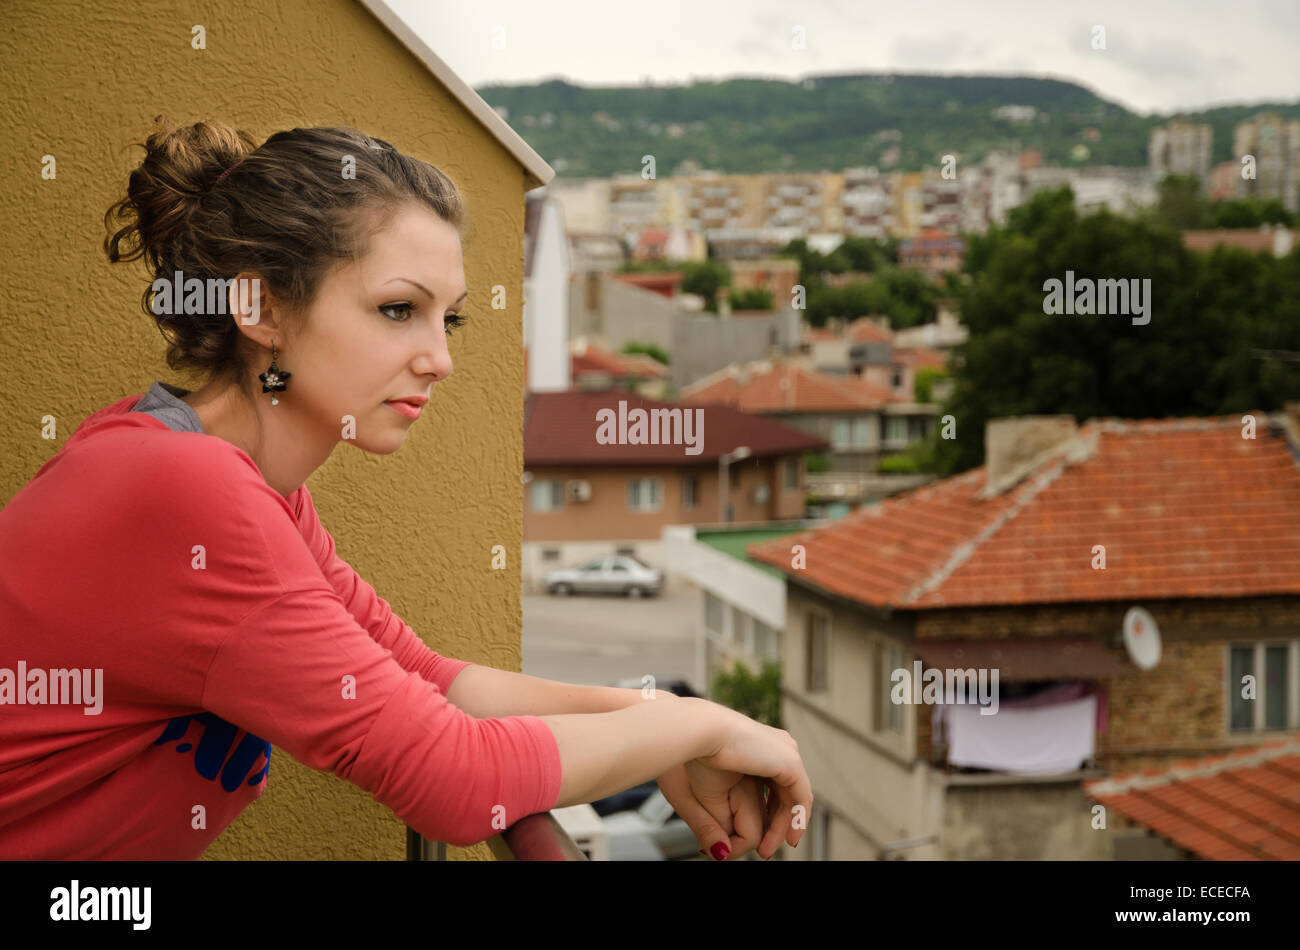 Woman standing on a balcony - Stock Image